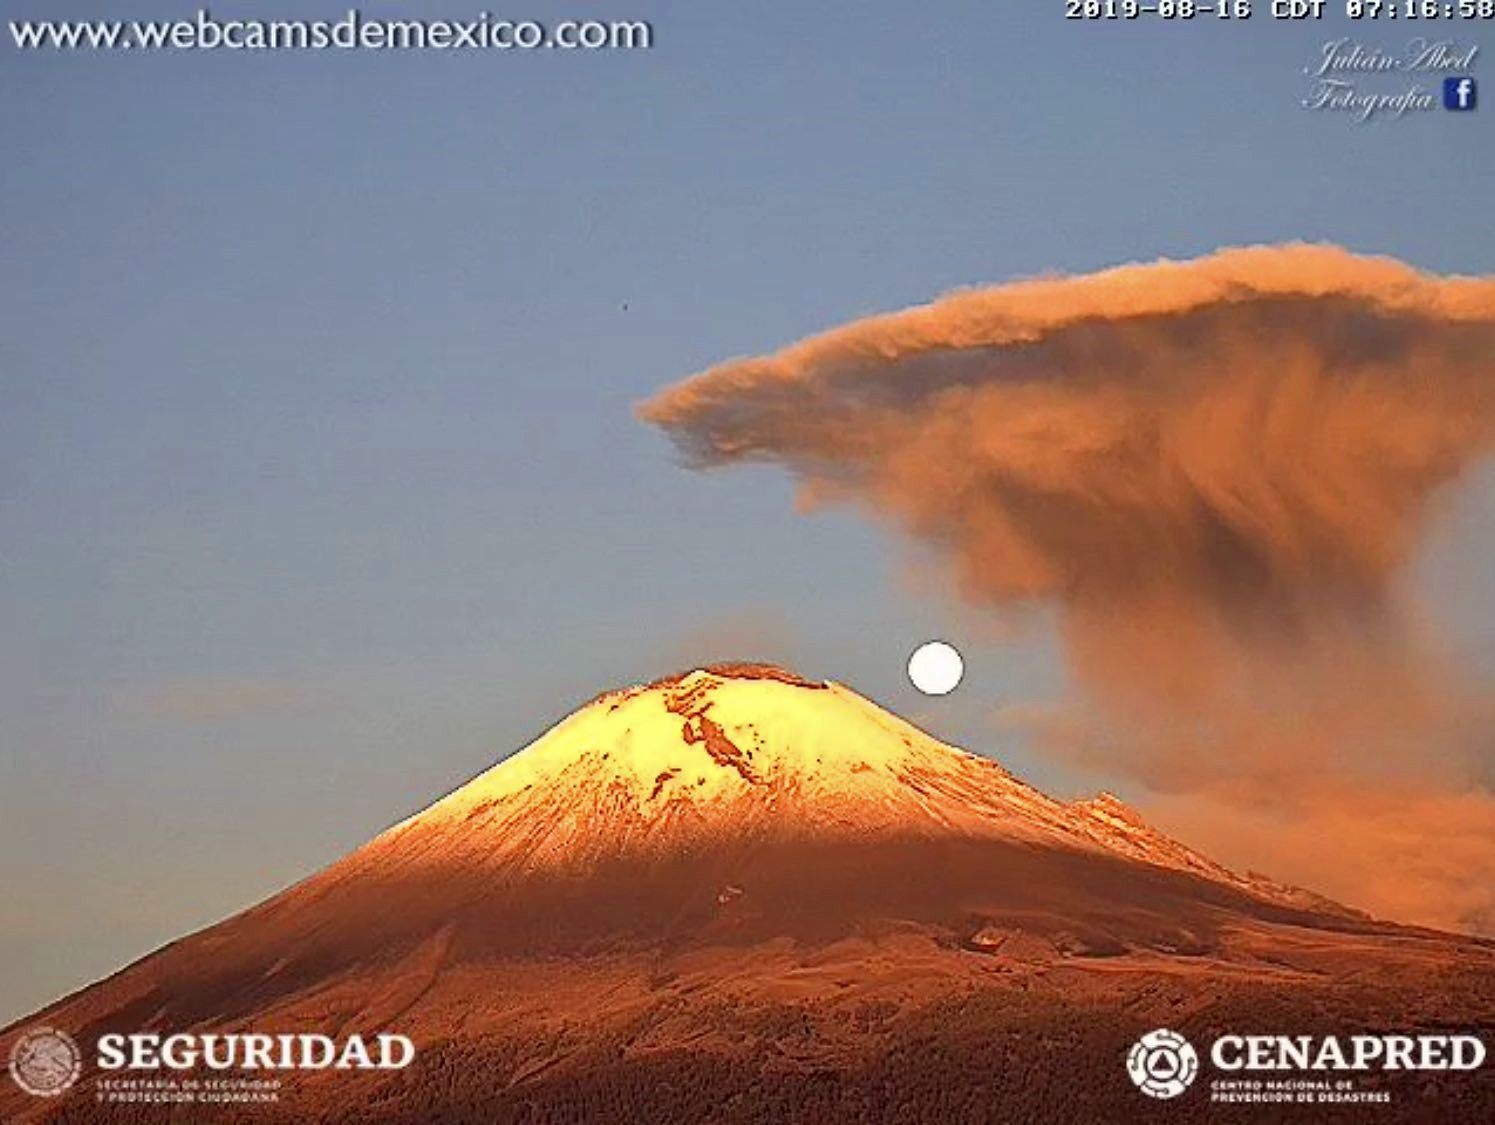 Popocatépetl 16.08.2019 / 7h16 - despite the danger, the volcano can present poetic images at sunrise, with the Moon and ashes exhaled a few moments before - webcamsdeMexico